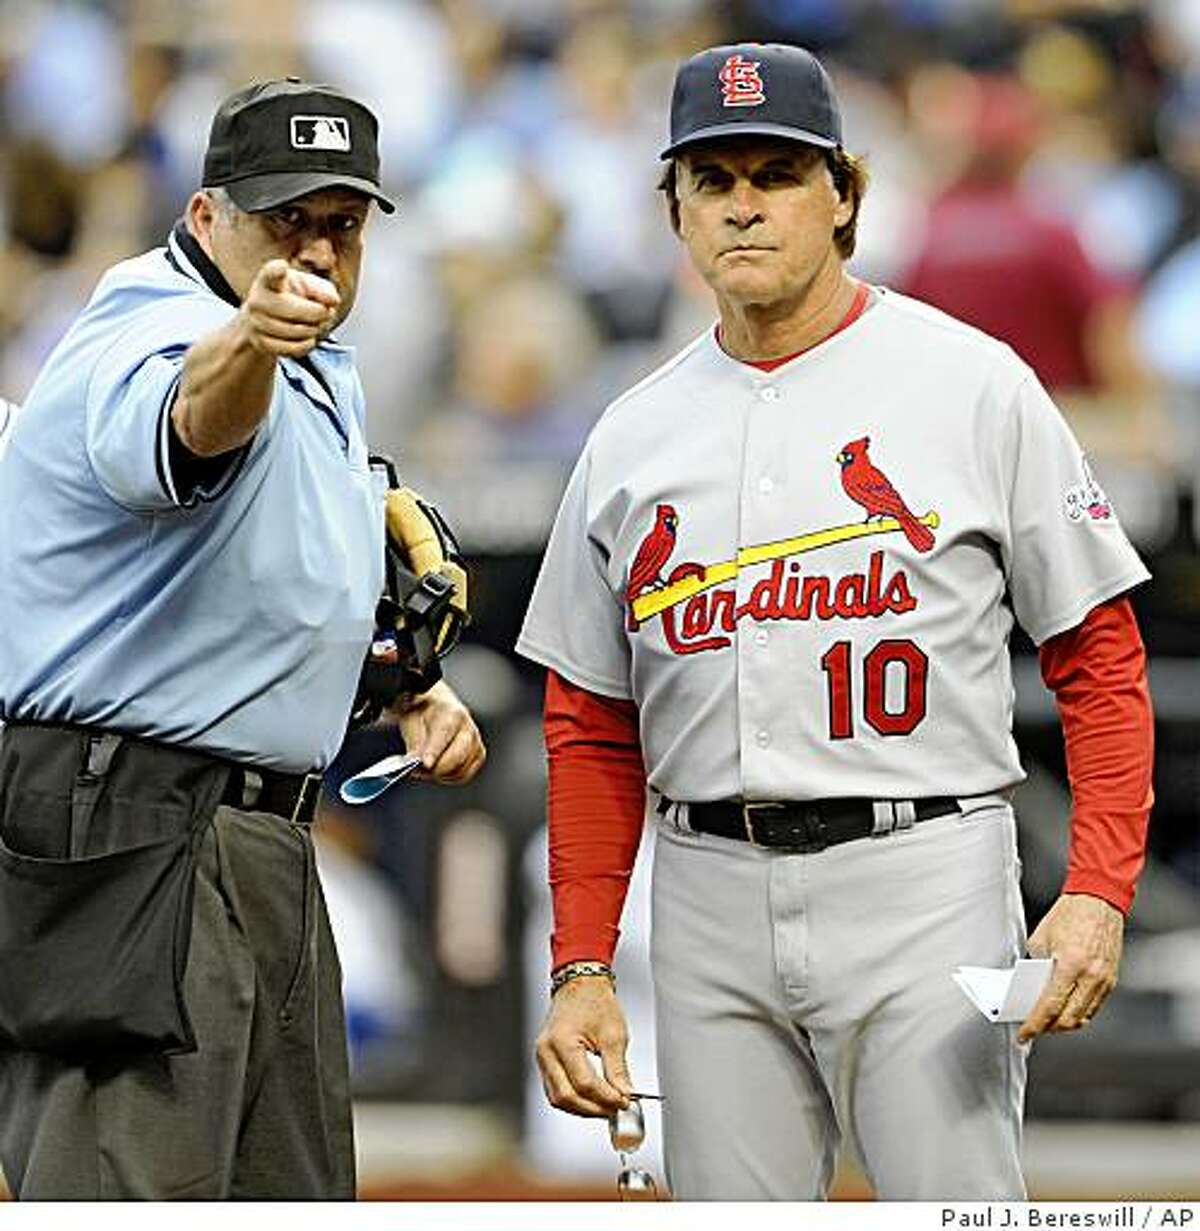 Umpire Dale Scott goes over the ground rules of Citi Field with St. Louis Cardinals manager Tony La Russa before the Cardinals' baseball game against the New York Mets at Citi Field in New York, Monday, June 22, 2009. (AP Photo/Paul J. Bereswill)